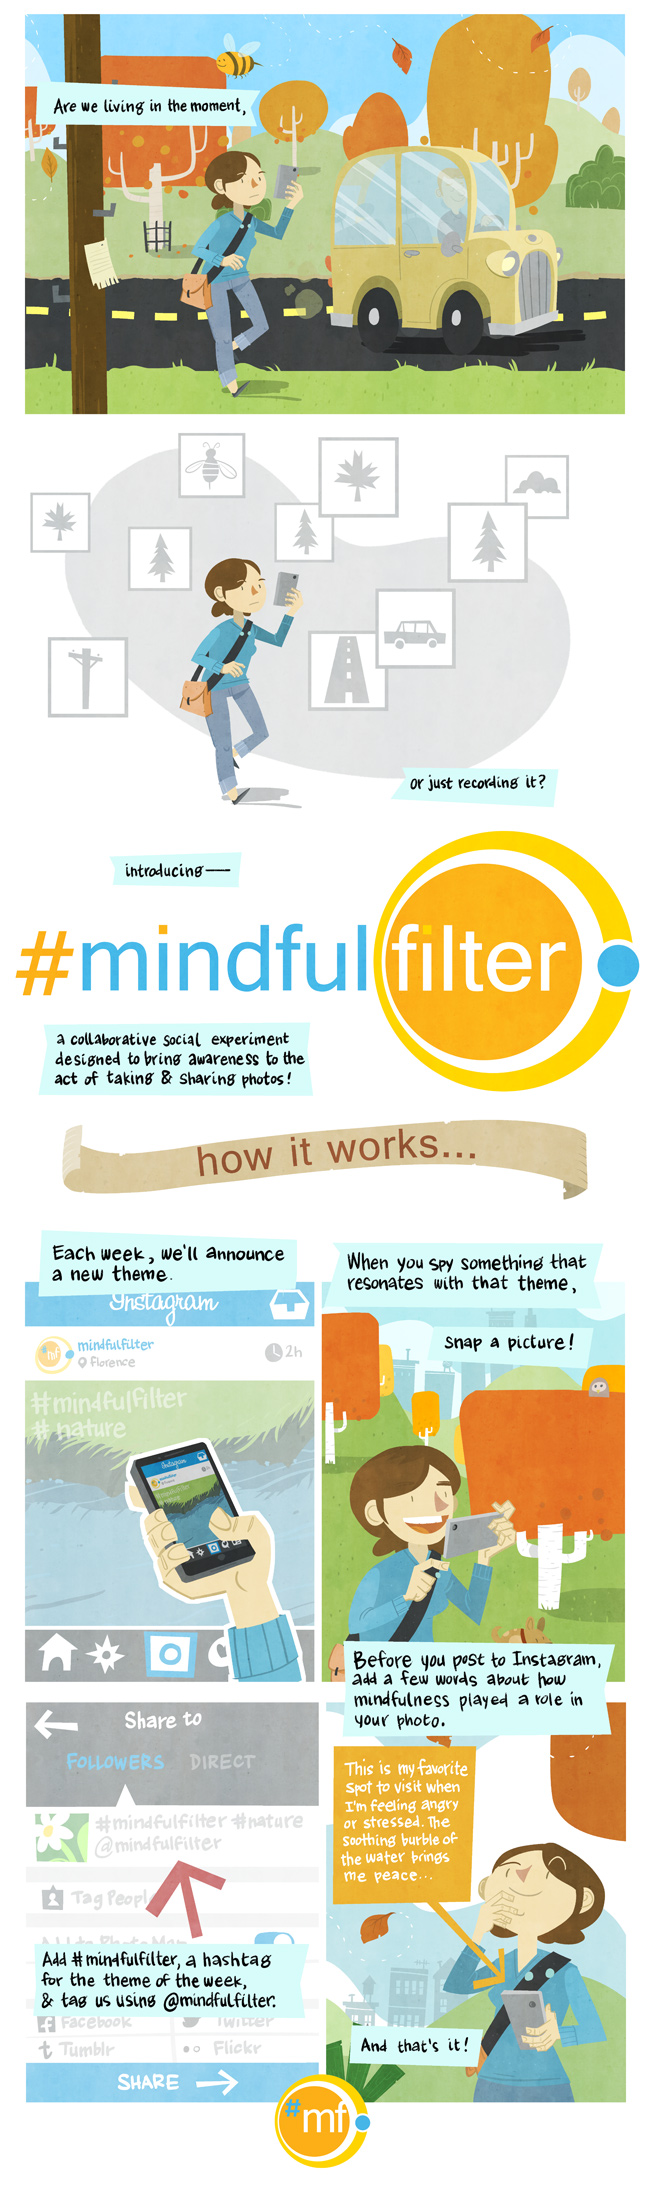 MindfulFilter: How It Works